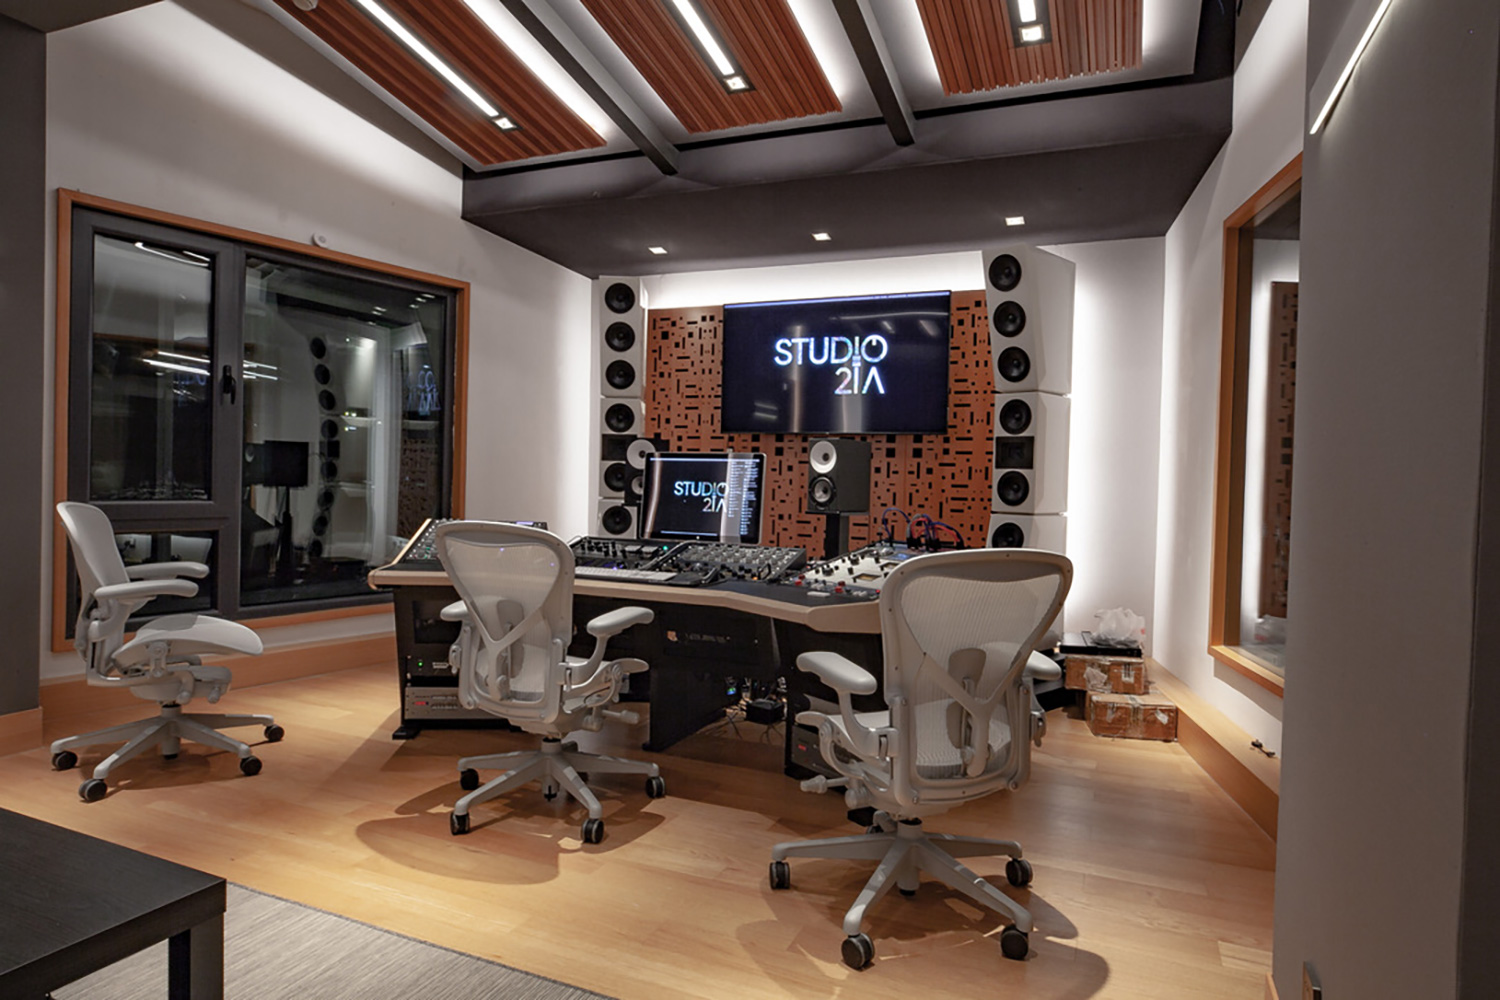 Intrigued by WSDG's reputation in designing the best recording studios in the world, multi-talented recording and mixing engineer TC Zhou started a deep collaboration with our global team for his brand-new studio facility in Beijing, China. Control Room A Mastering Suite 2.